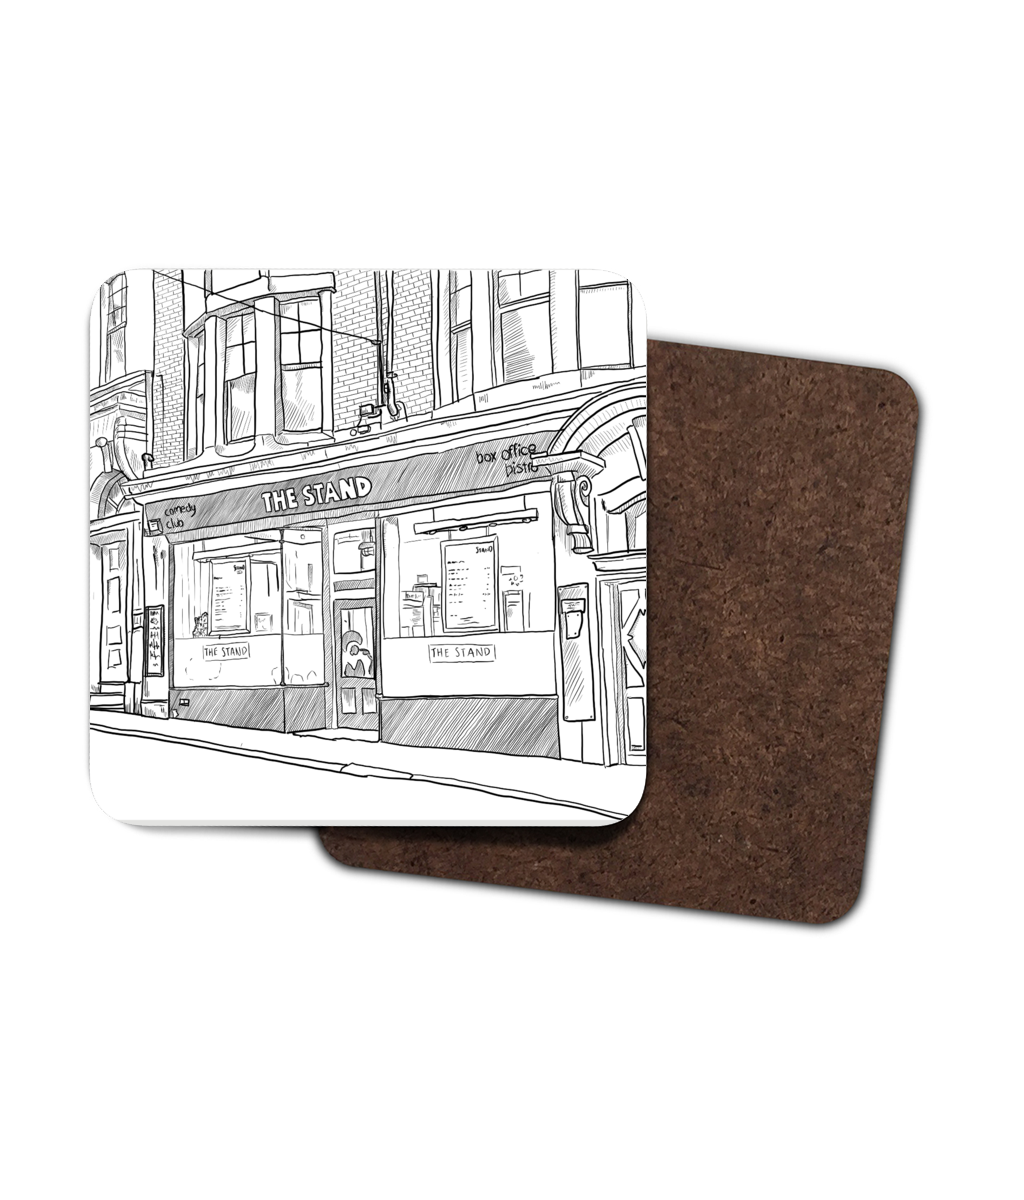 Matt Reed Illustration | Coasters | The Stand Newcastle